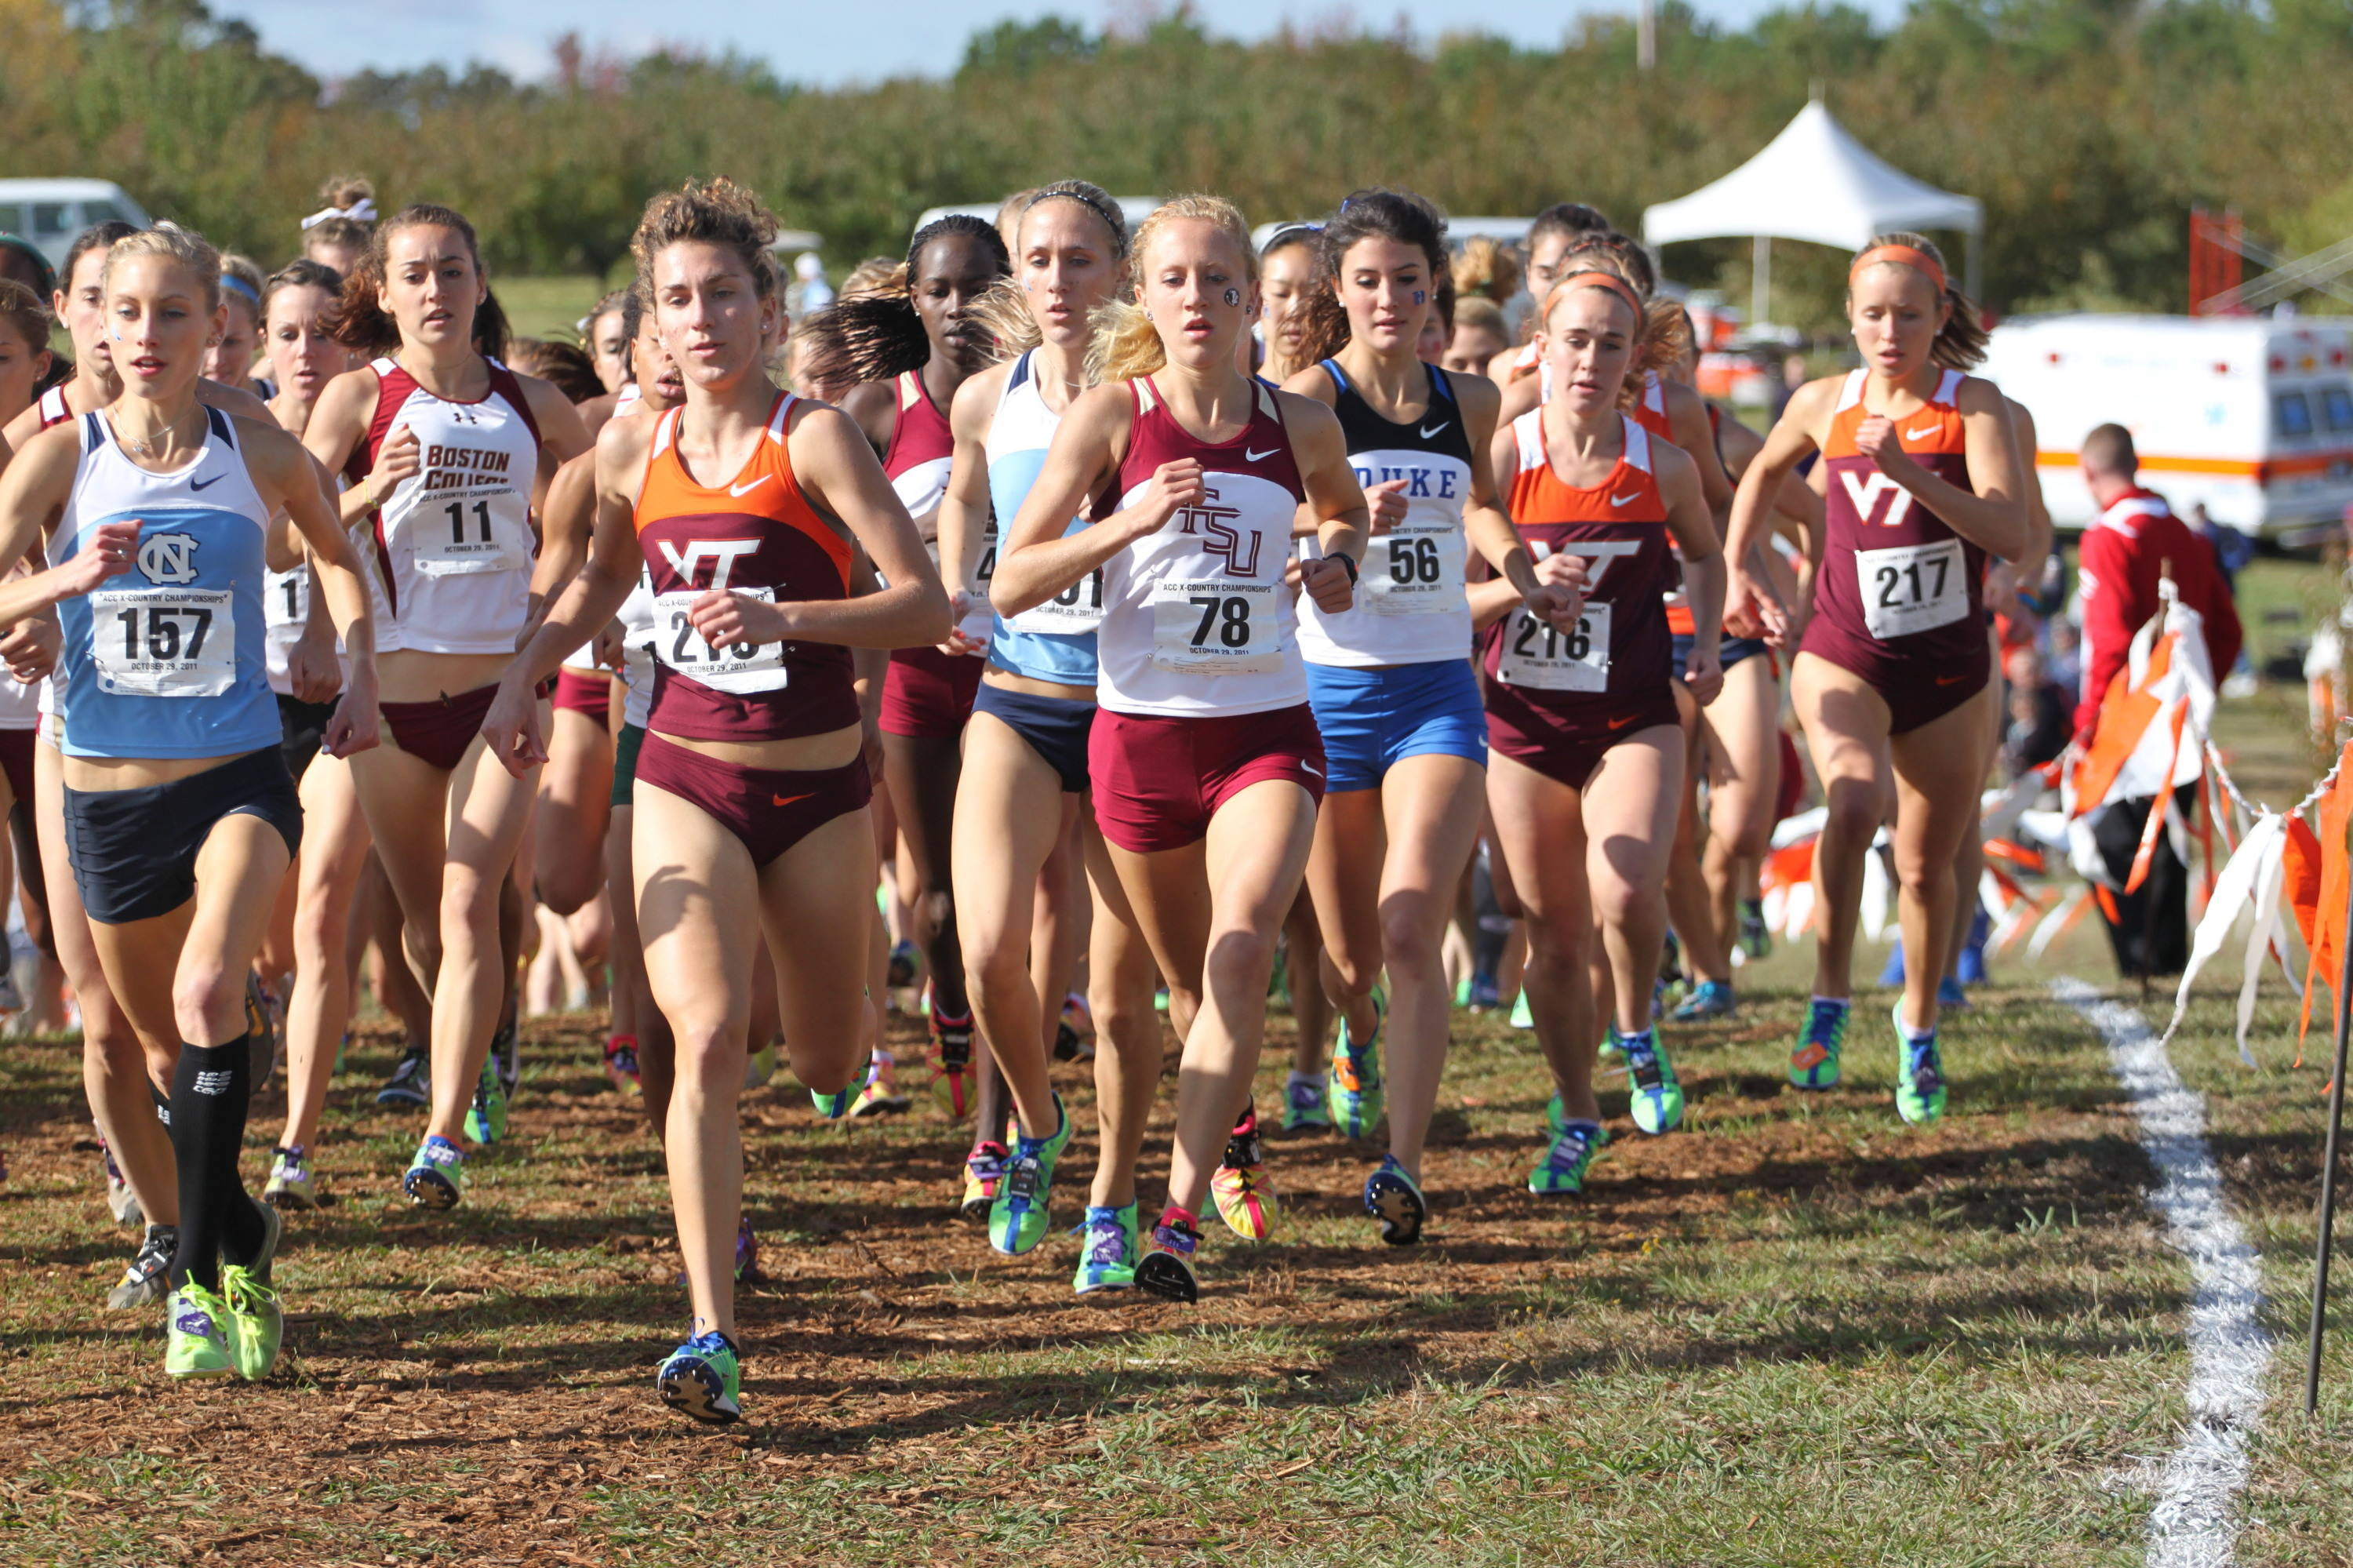 Amanda Winslow is among the front-runners early on at the 2011 ACC Championships.